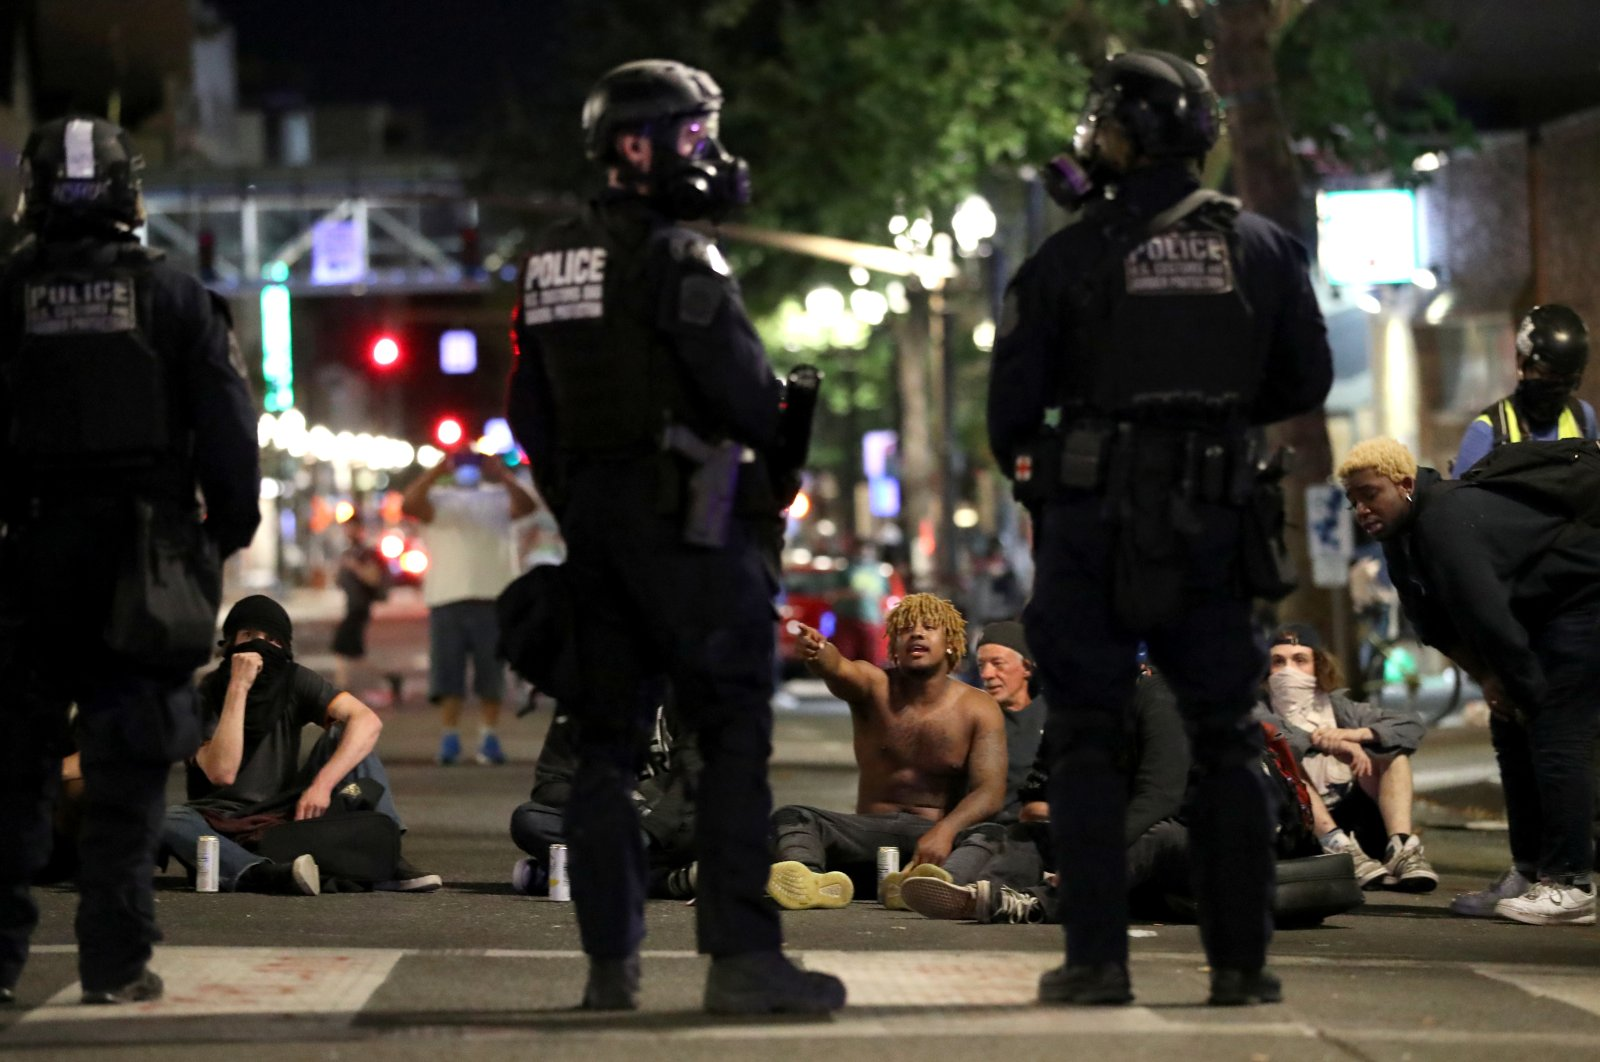 Demonstrators sit on the street during a protest against racial inequality and police violence, Portland, Oregon, U.S., July 27, 2020. (Reuters Photo)